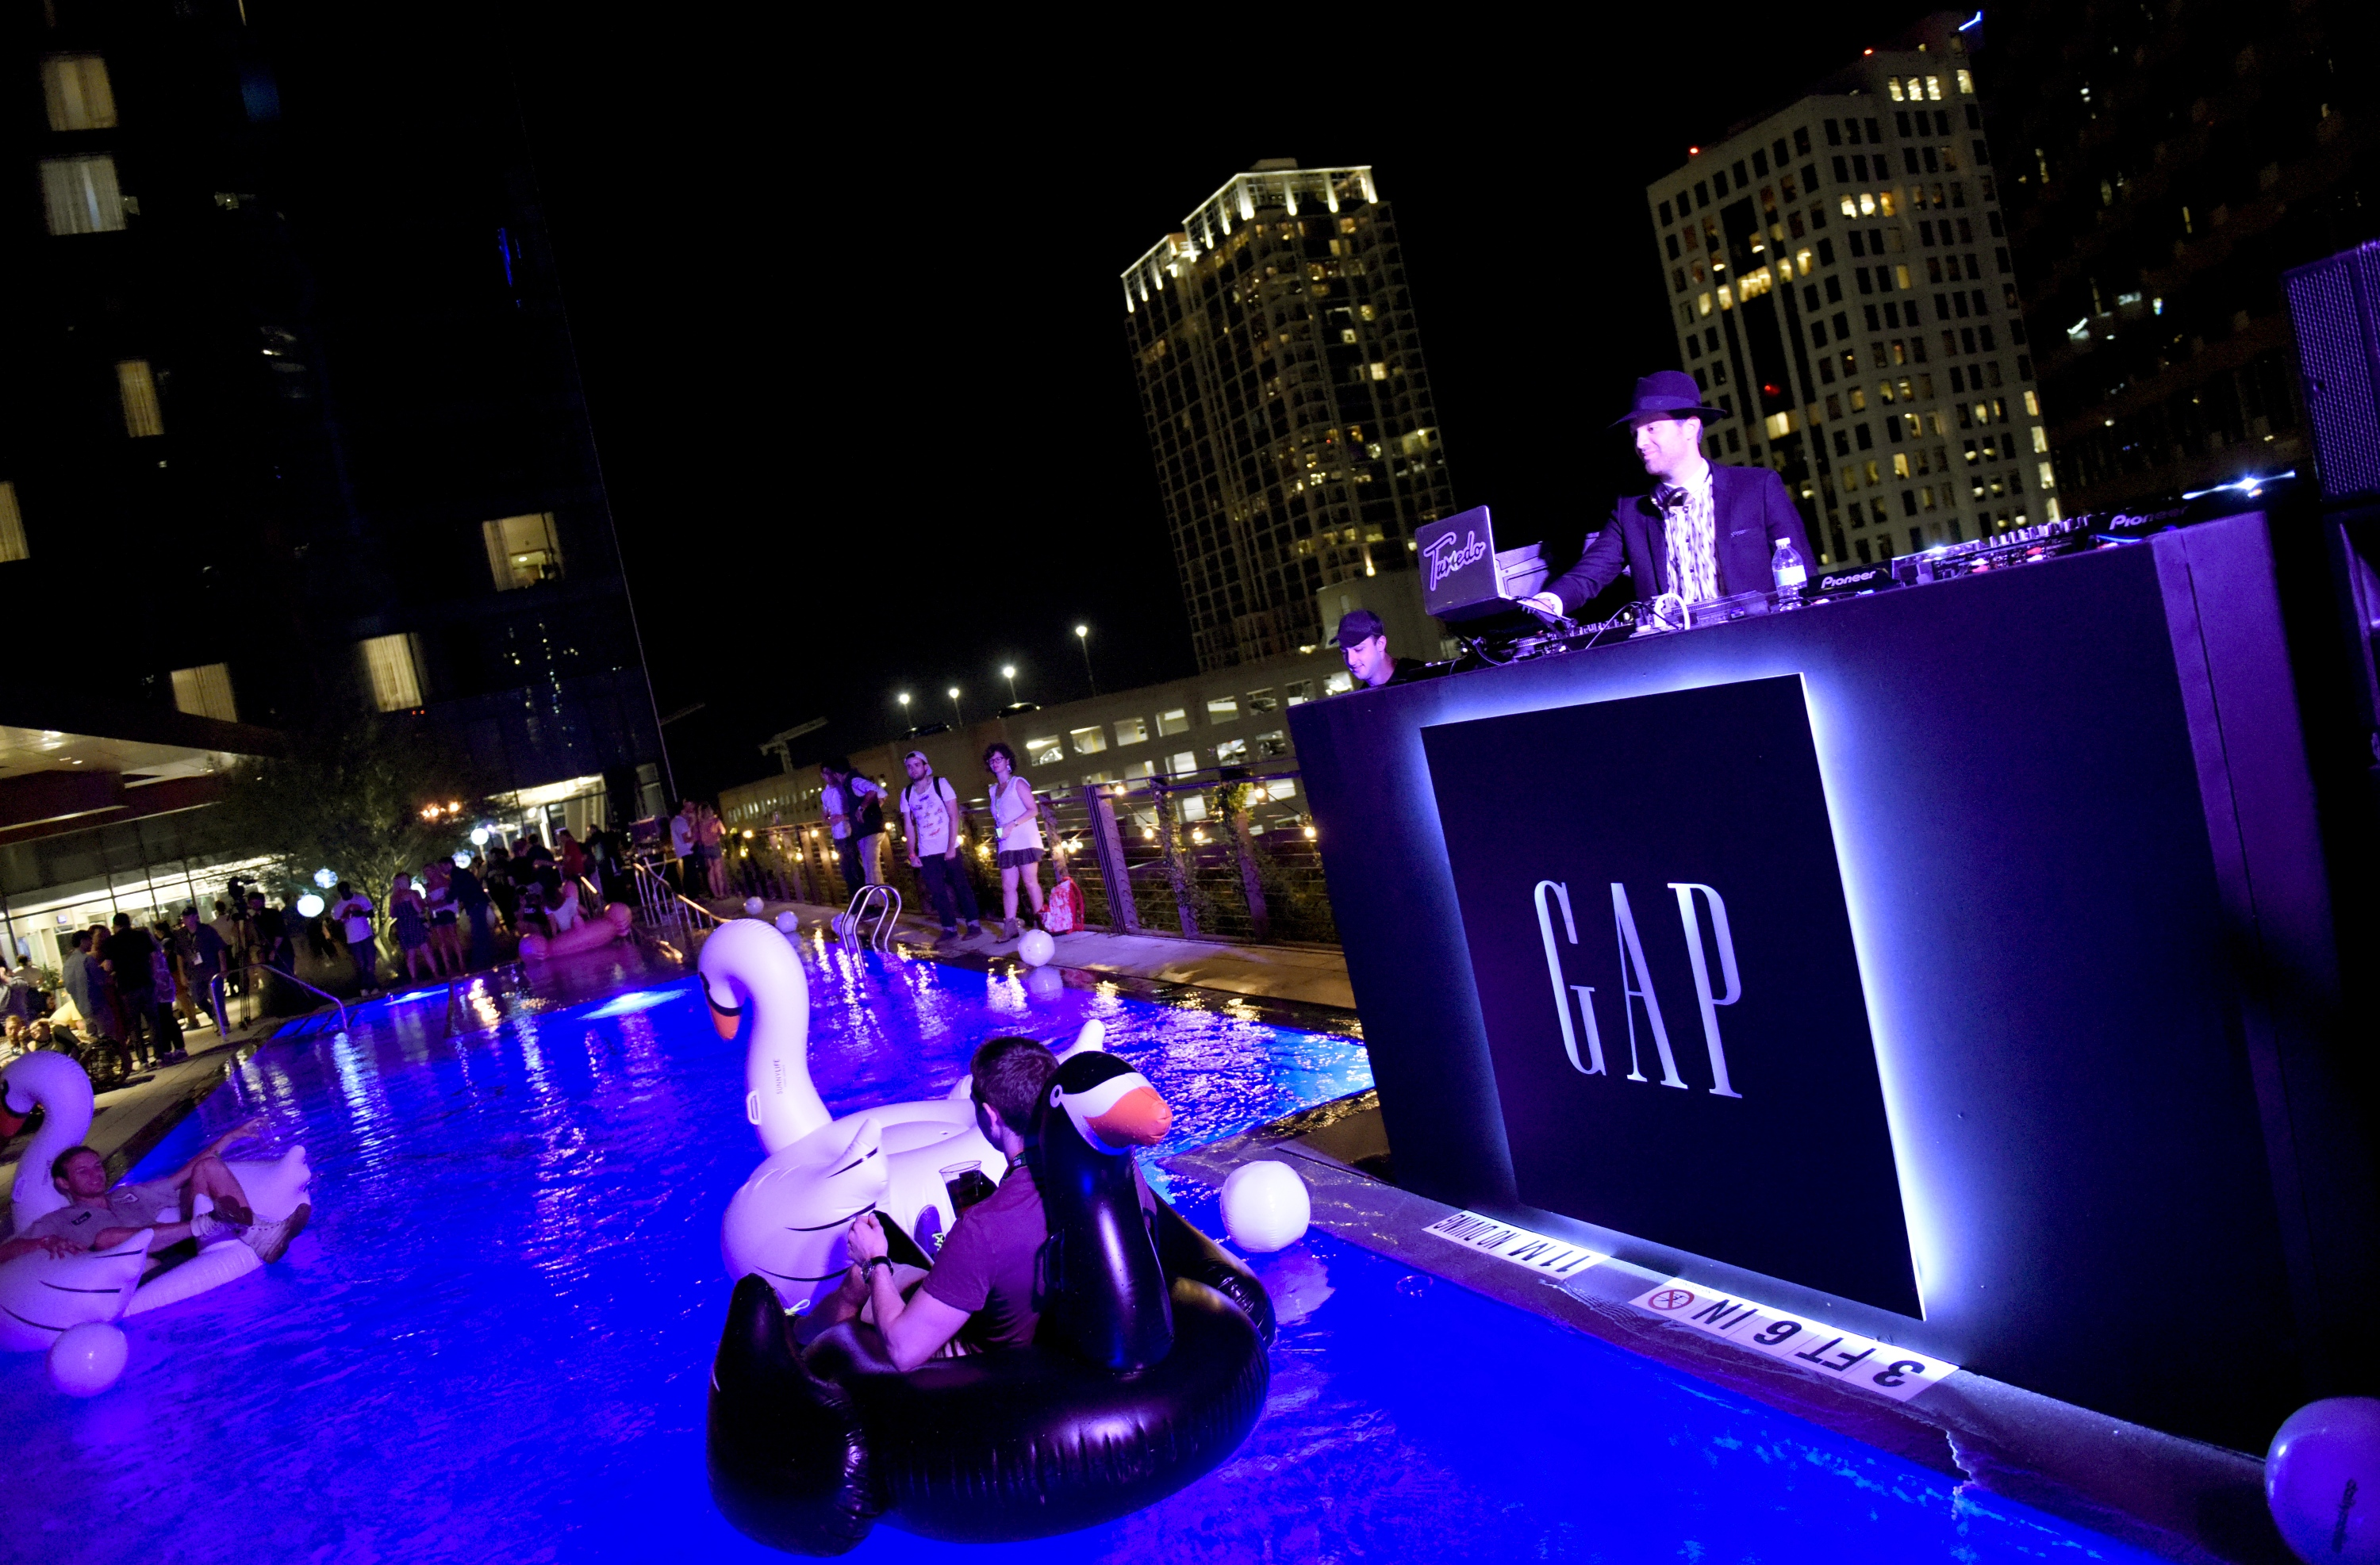 AUSTIN, TX - MARCH 15:  DJ Mayer Hawthorne spins at Music Is Universal Poolside DJ Bash, presented by Marriott Rewards and Universal Music Group, during SXSW at the JW Marriott Austin on March 15, 2016 in Austin, Texas.  (Photo by Vivien Killilea/Getty Images for Universal Music Group)